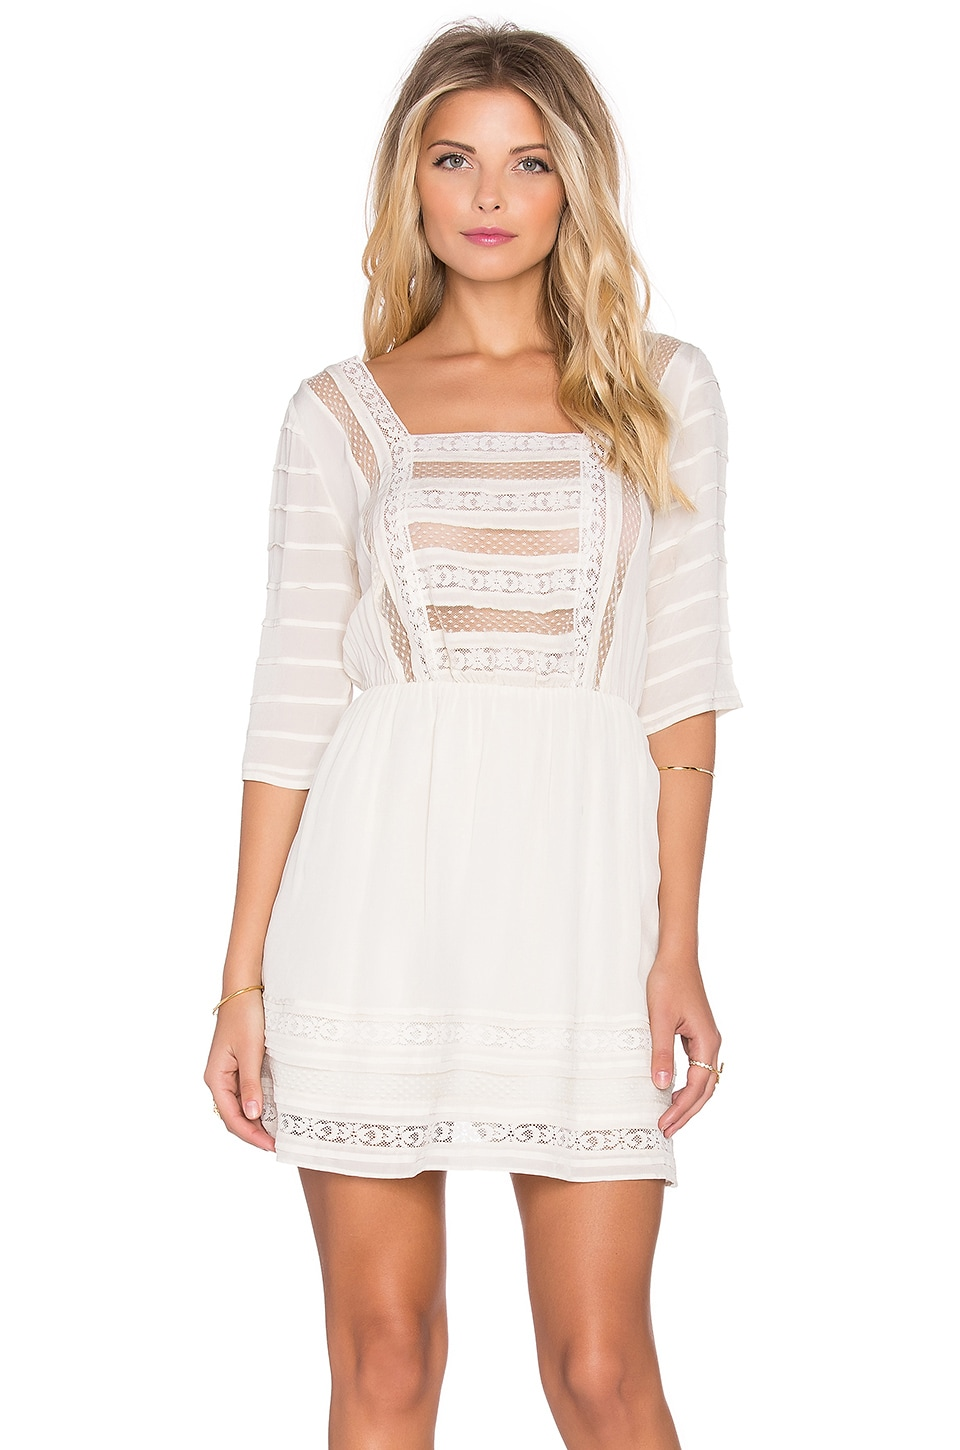 Tularosa Jolle Dress in Ivory